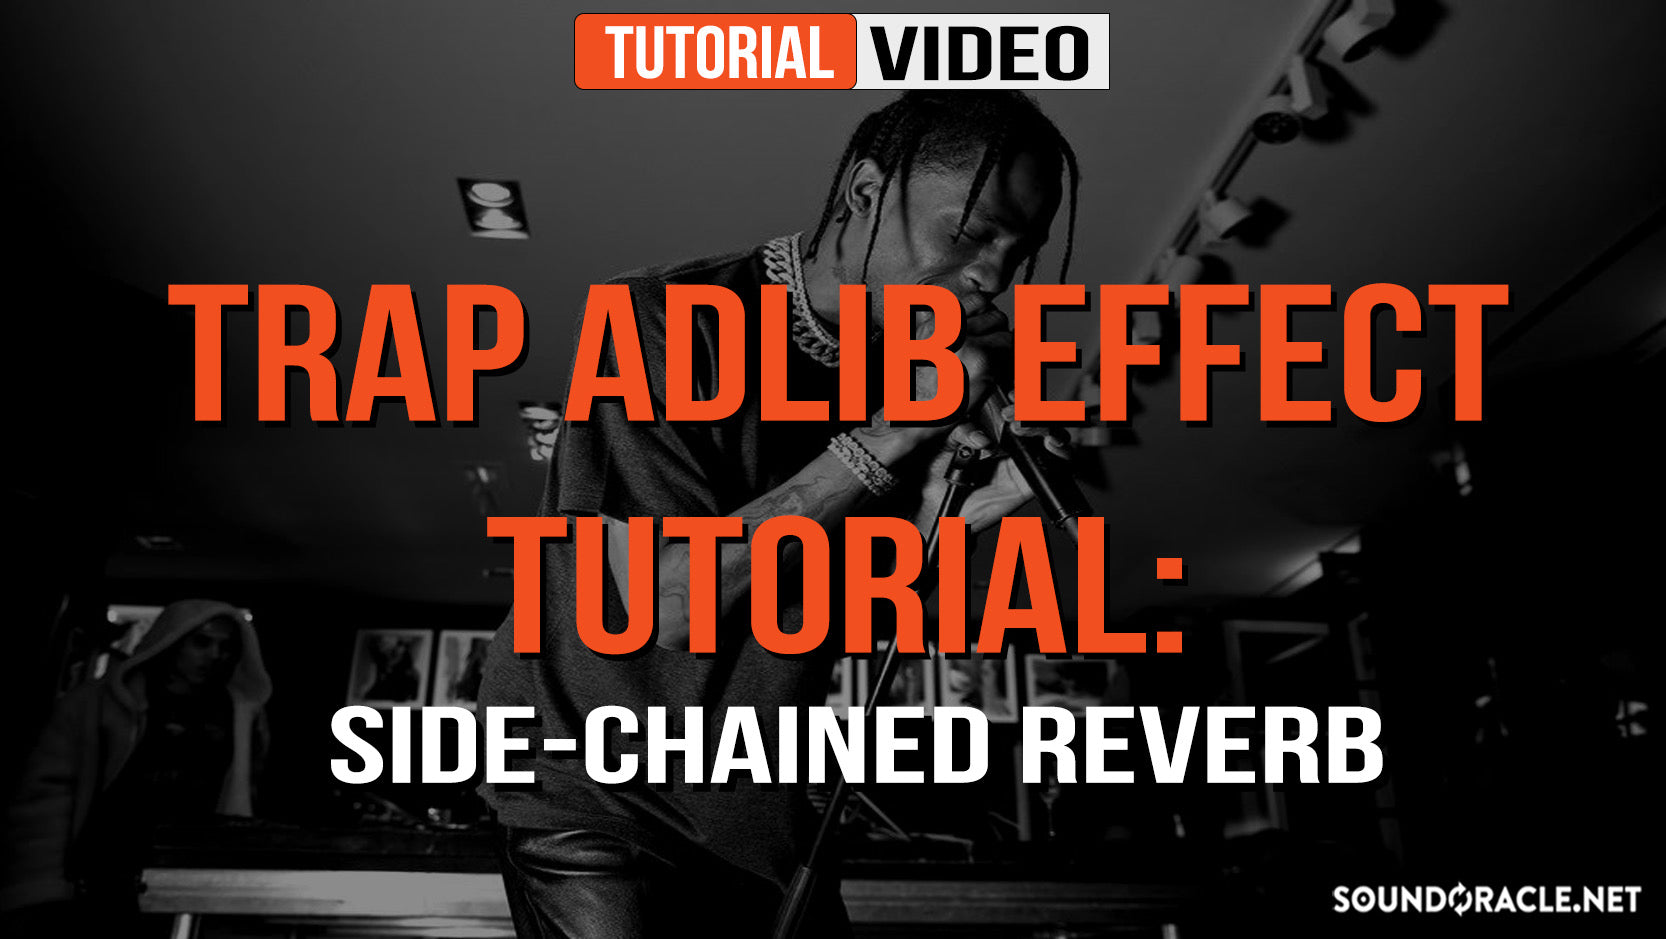 Trap Adlib Effect Tutorial: Side-Chained Reverb